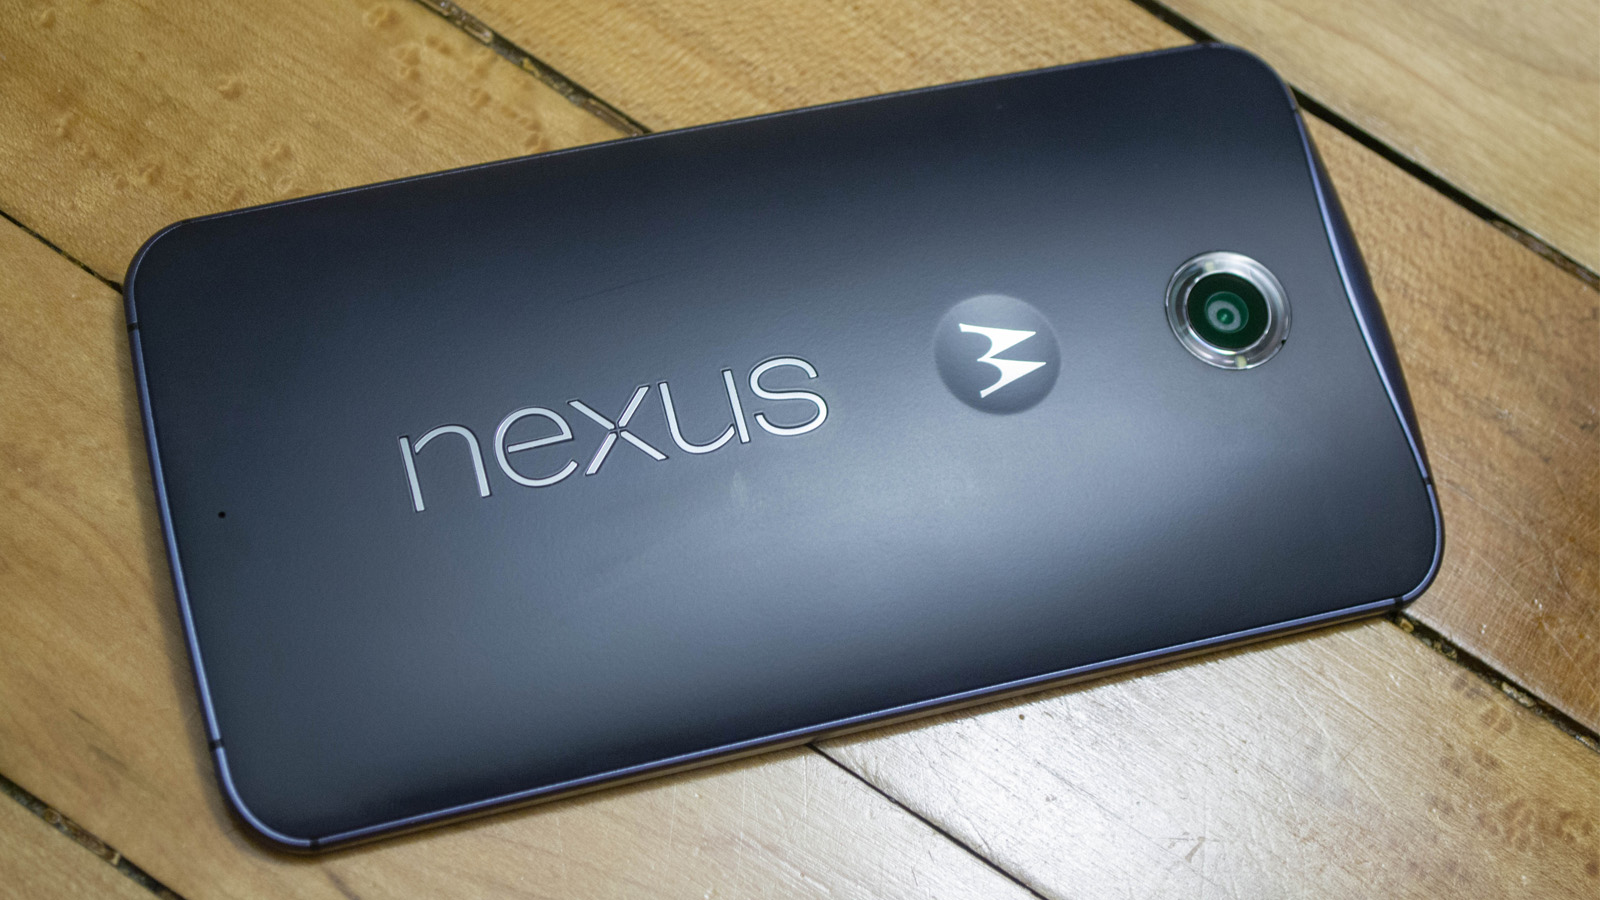 Phone Most Expensive Android Phones my favorite things of 2014 android phones smartwatches games i dont exactly love spending 650 on a nexus phone but the fact matter is thats what high end costs you c